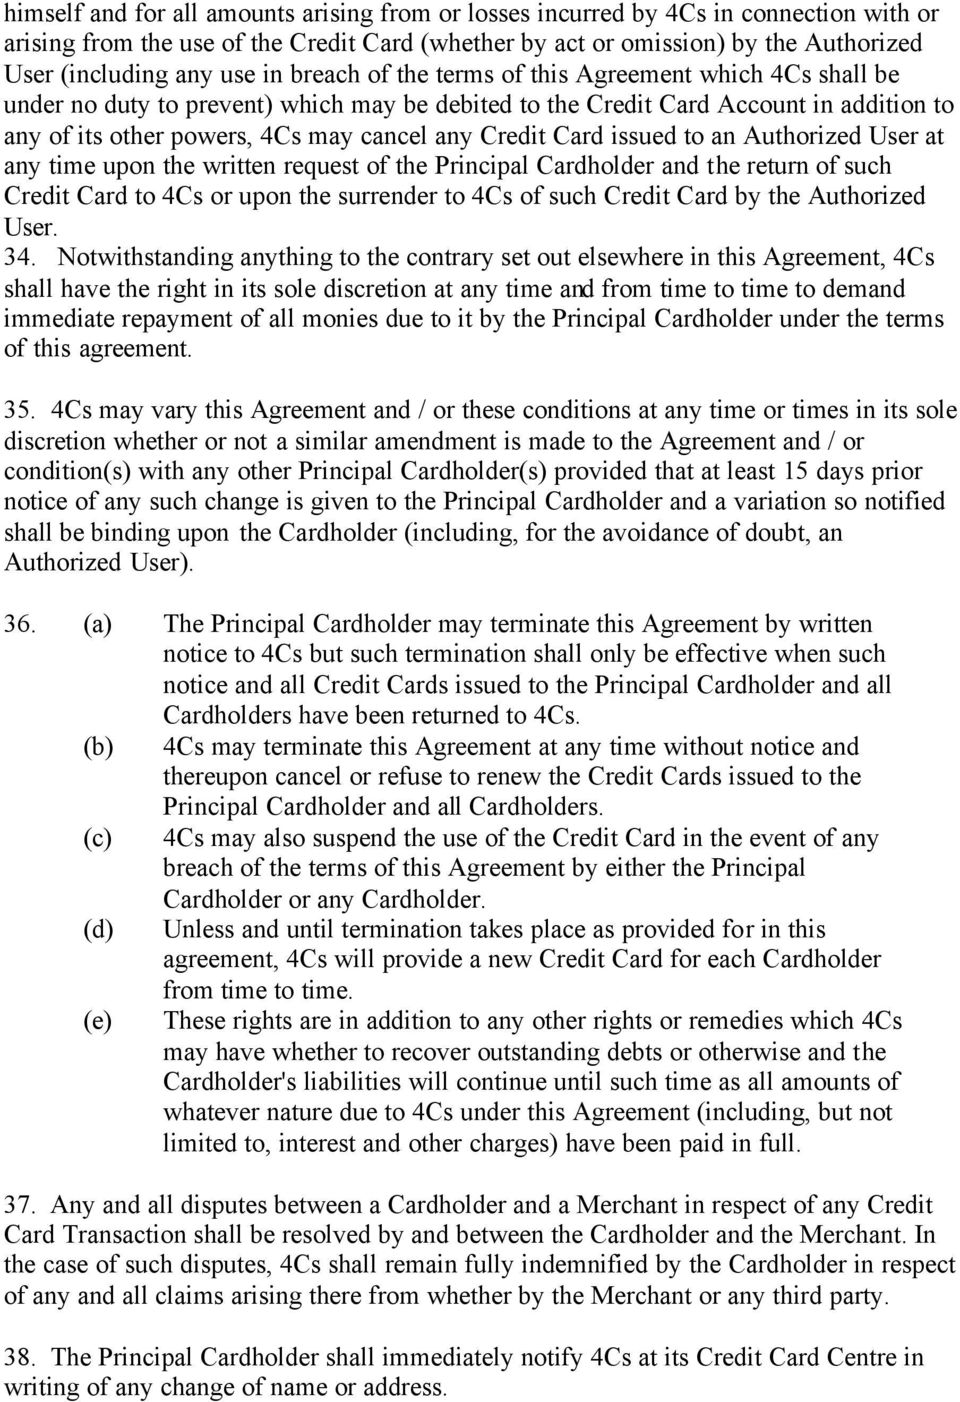 Card issued to an Authorized User at any time upon the written request of the Principal Cardholder and the return of such Credit Card to 4Cs or upon the surrender to 4Cs of such Credit Card by the